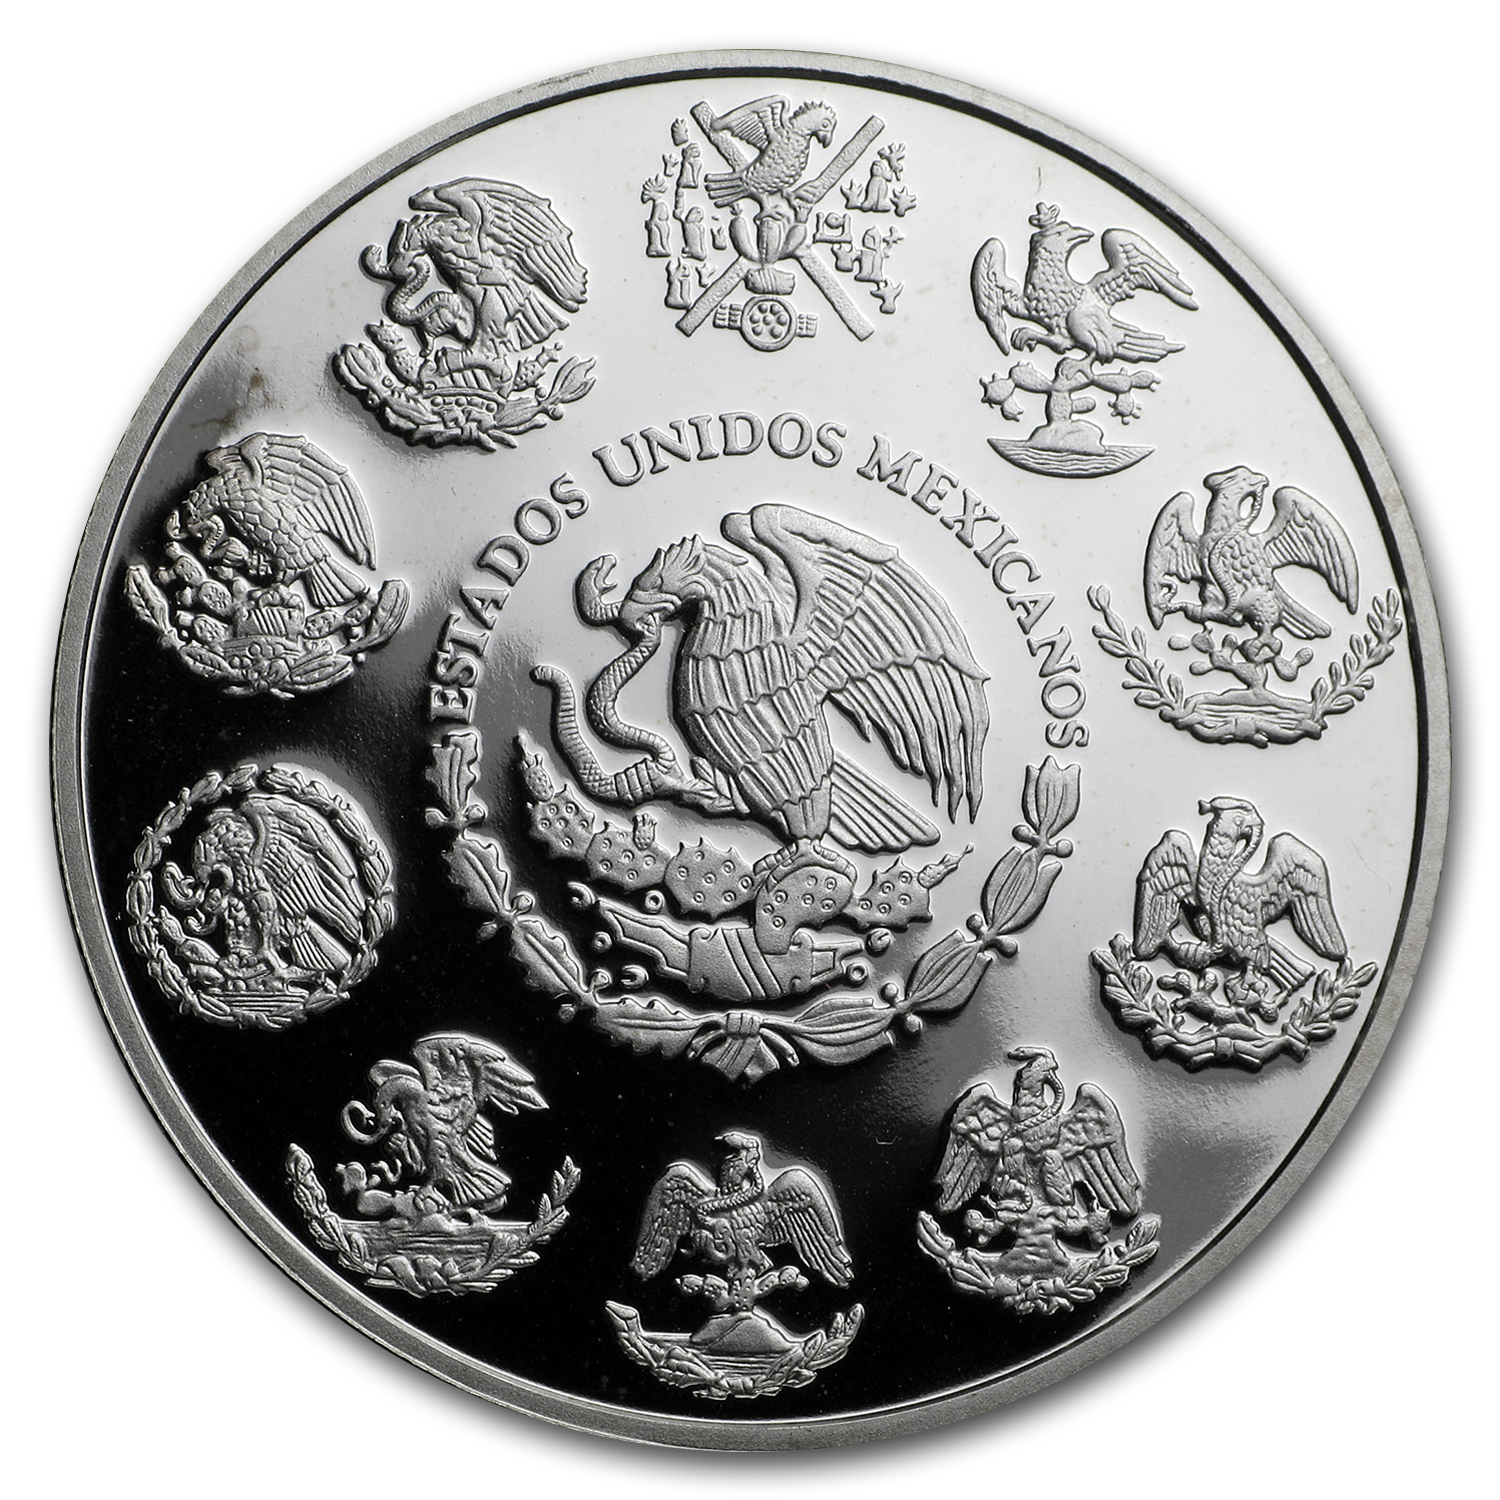 2012 Mexico 1 oz Silver Libertad Proof (In Capsule)